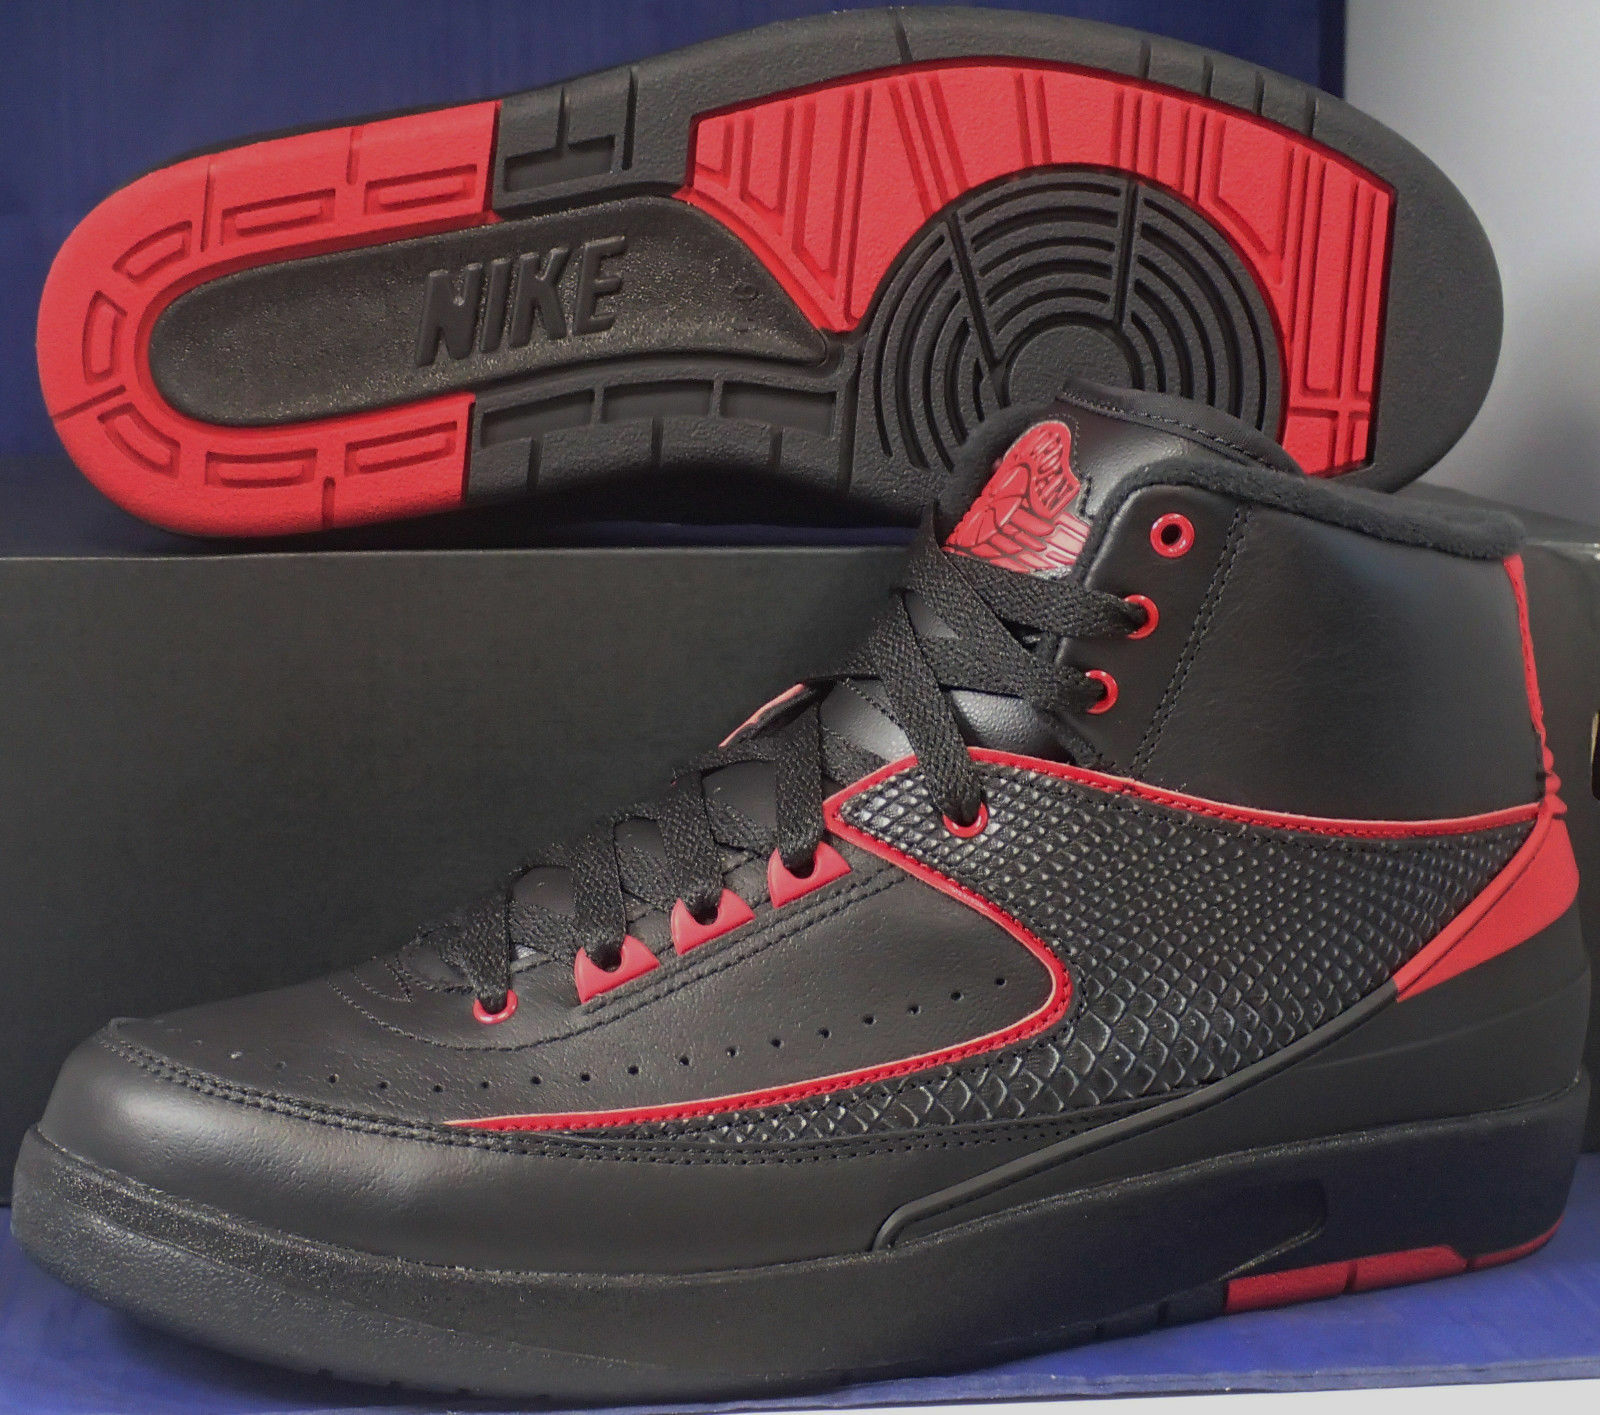 Nike Air Jordan 2 II Retro Alternate 87 Black Varsity Red SZ 11.5 ( 834274-001 )